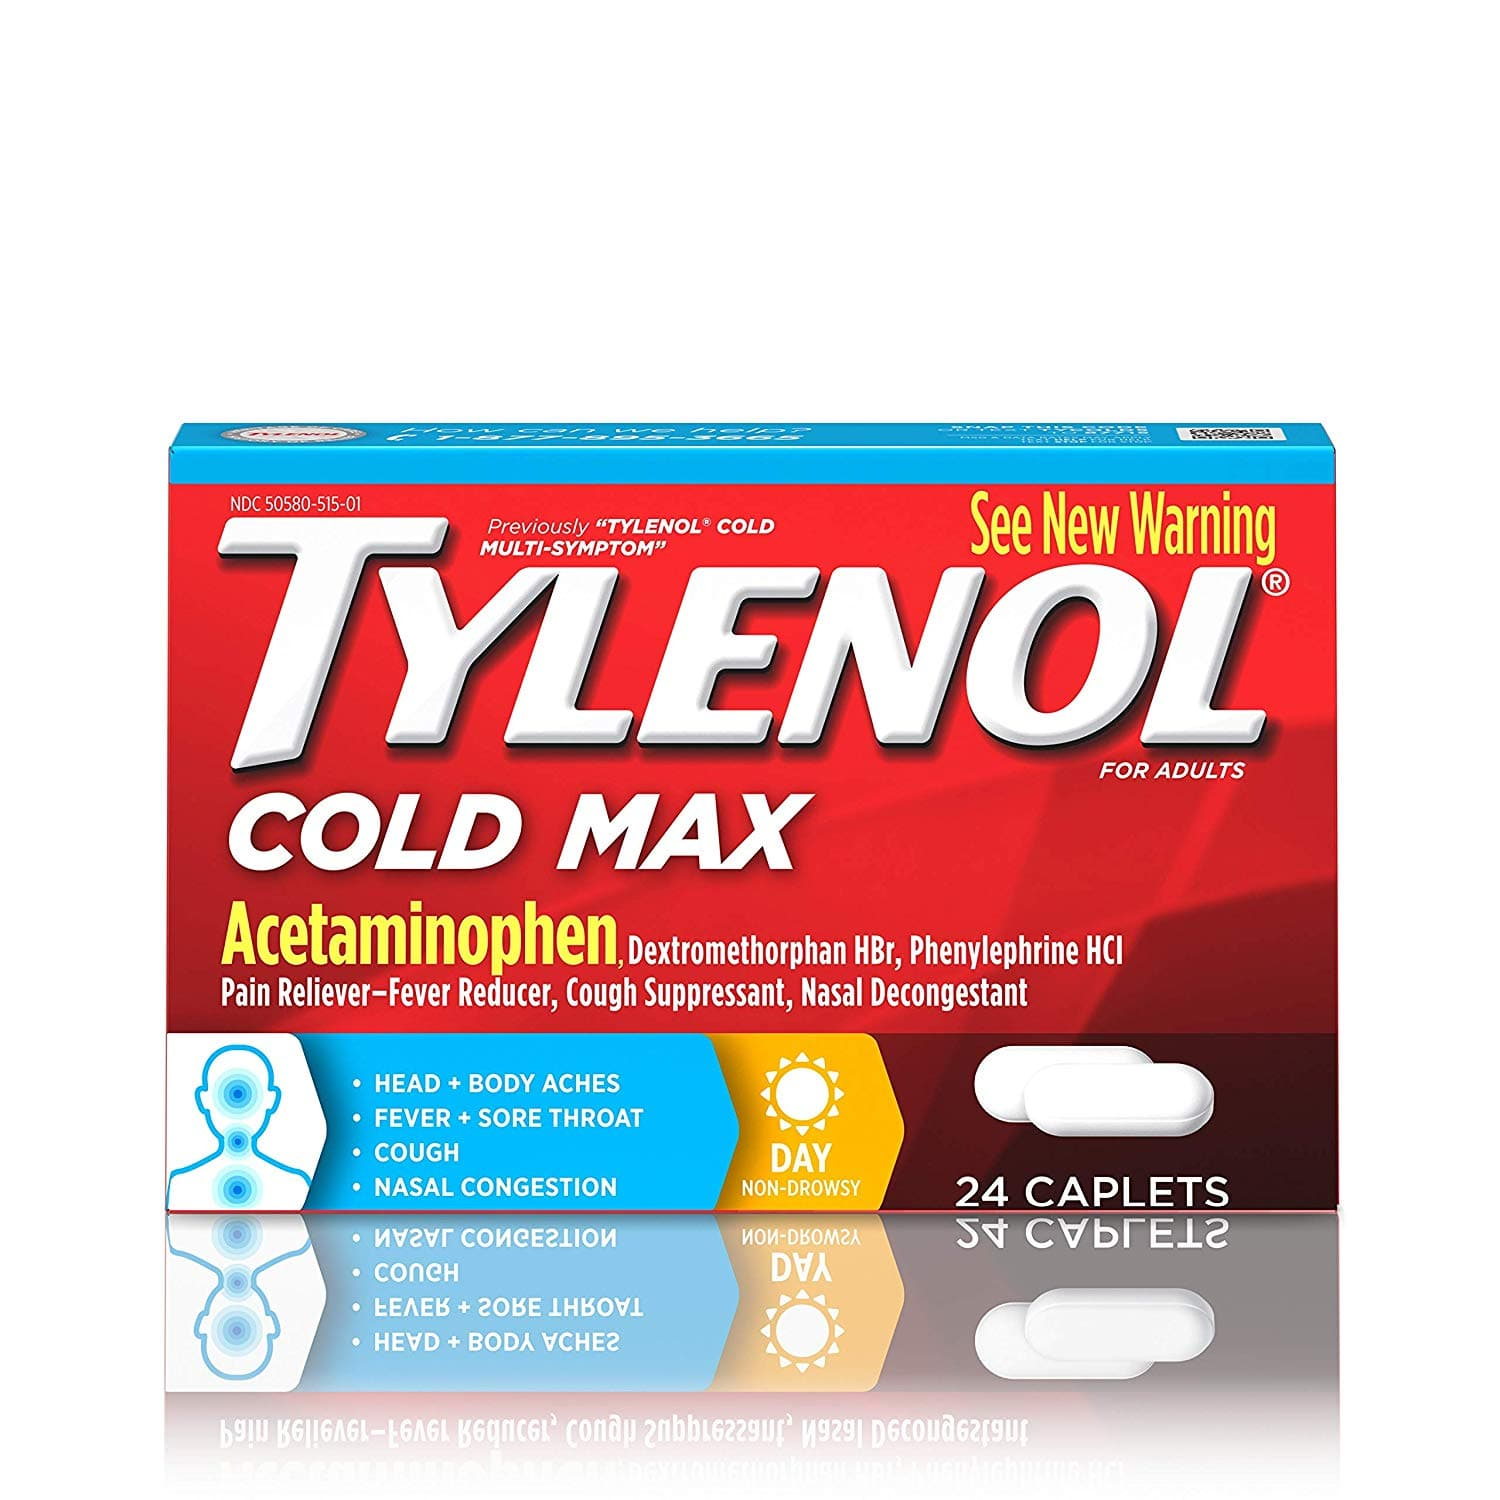 24 Count, Tylenol Cold Max Daytime Caplets - $1.50 Amazon Prime